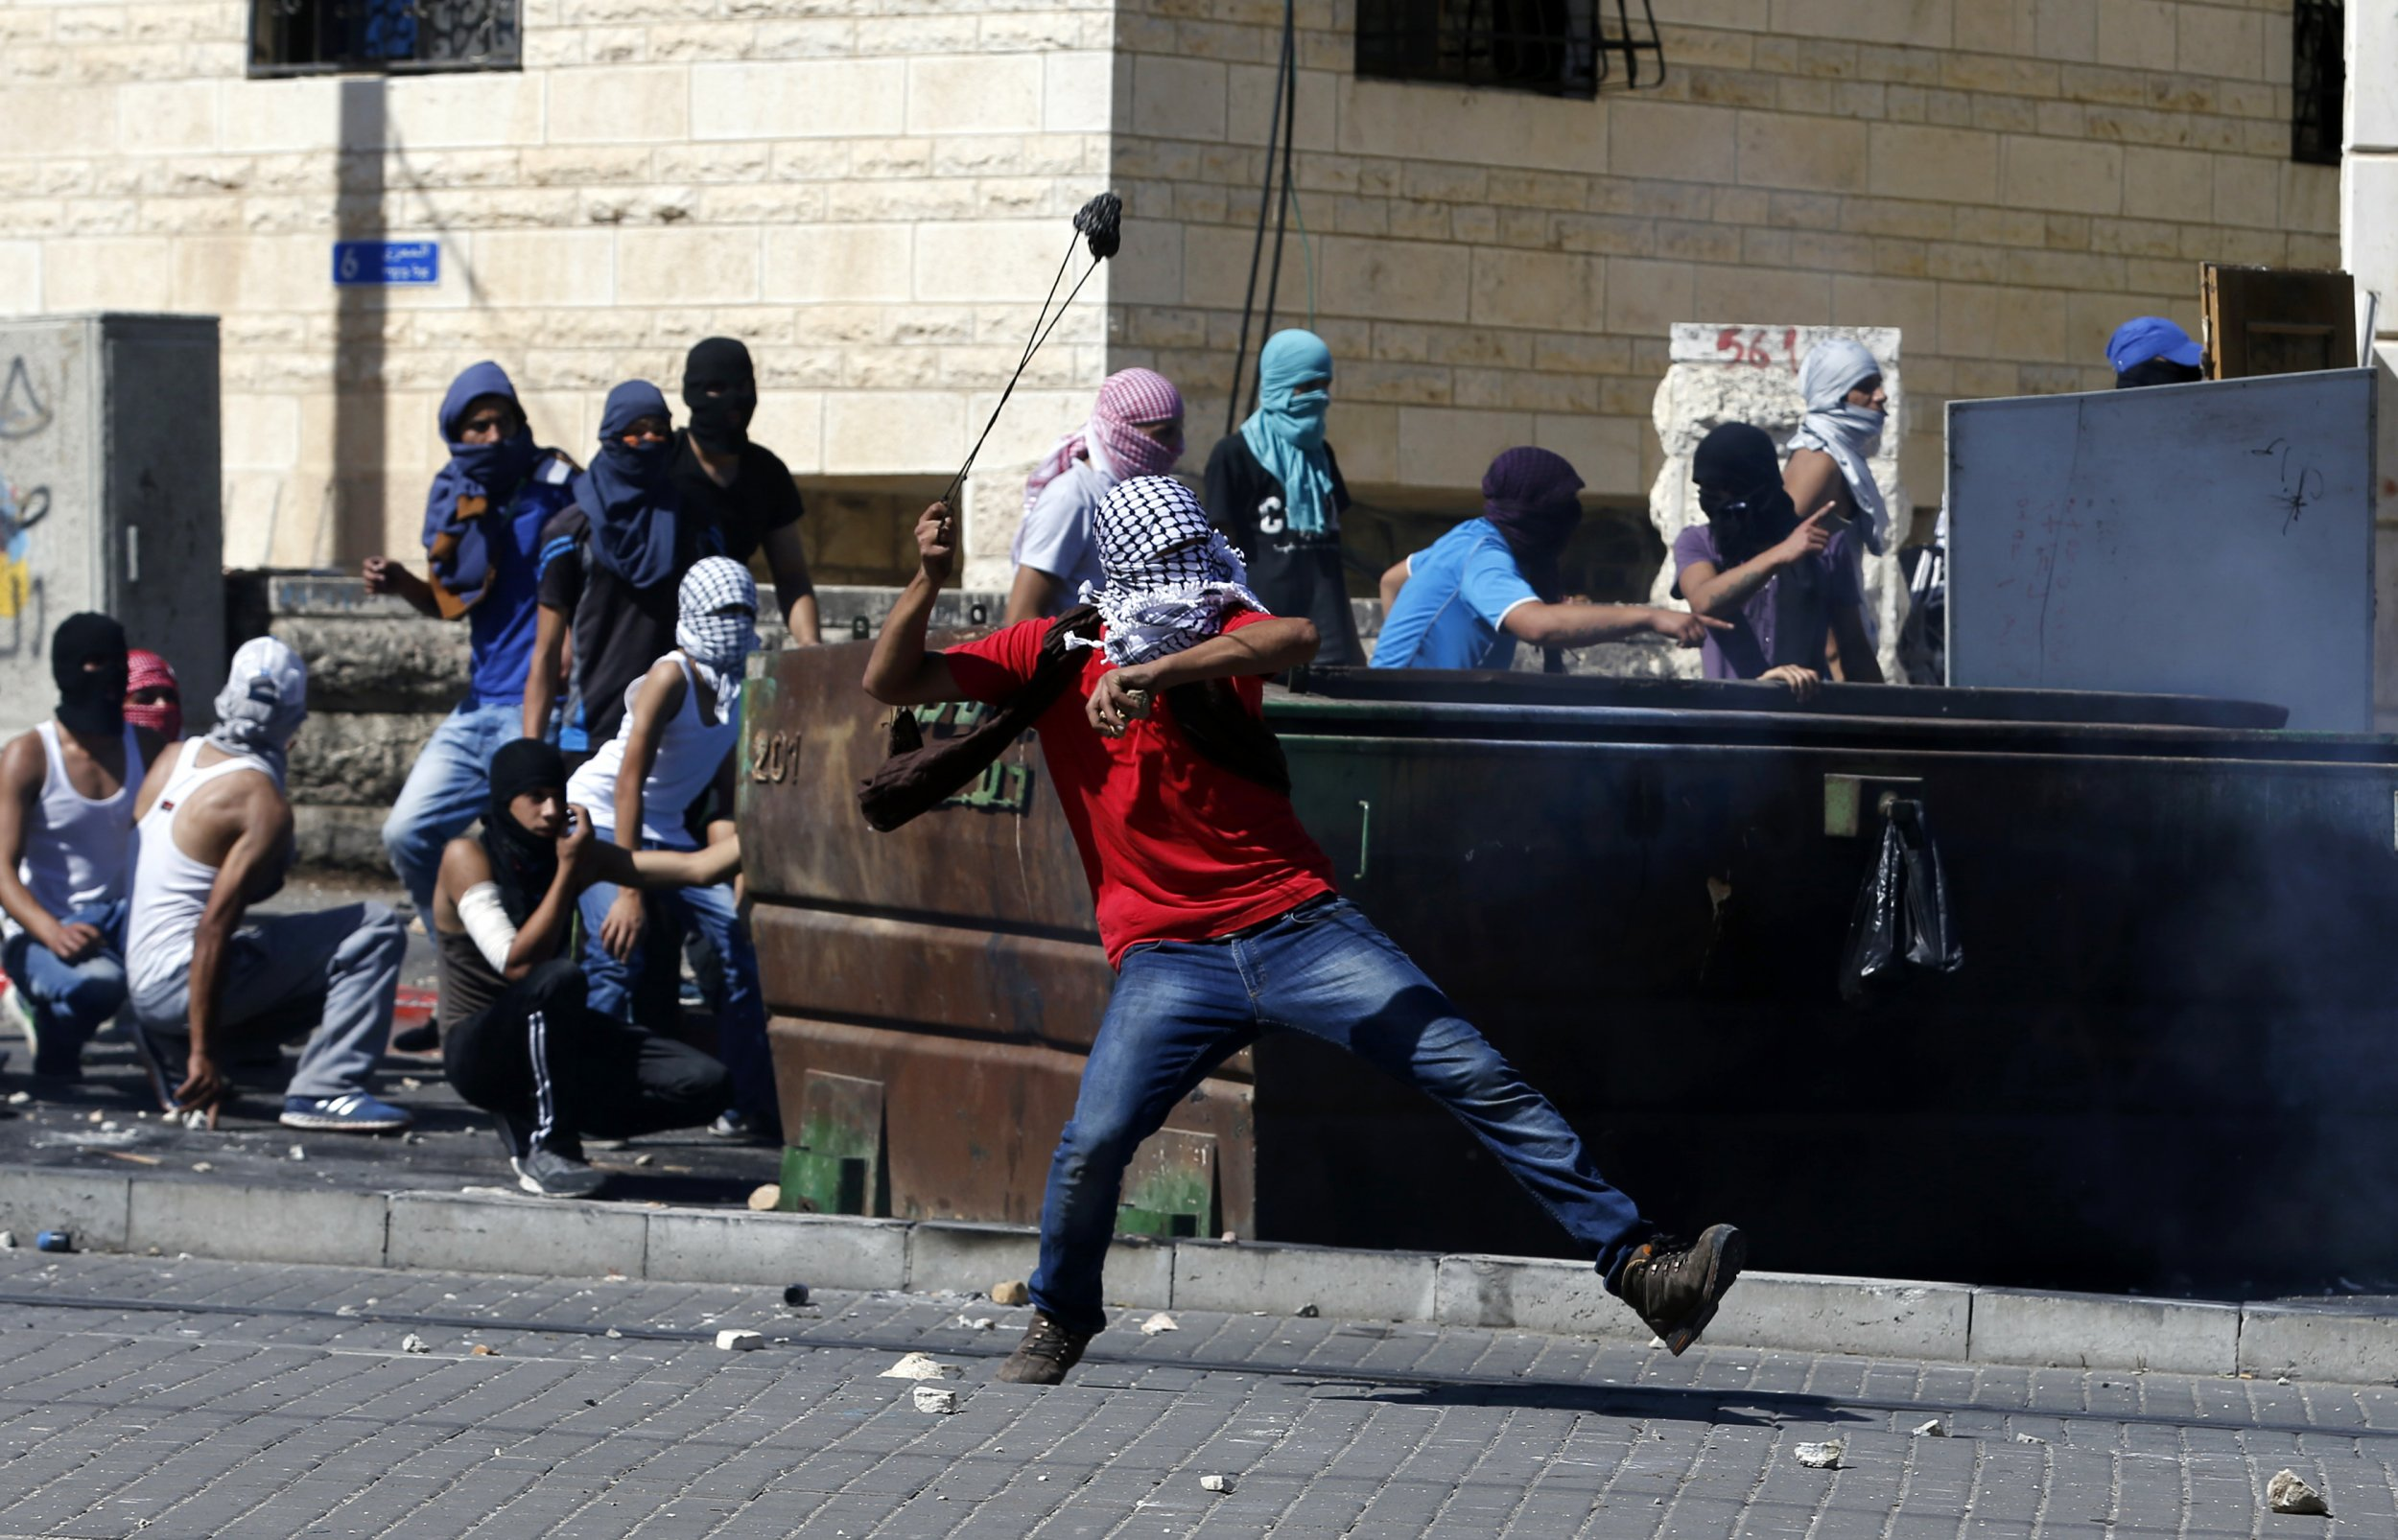 Palestinian hurling stone in Jerusalem